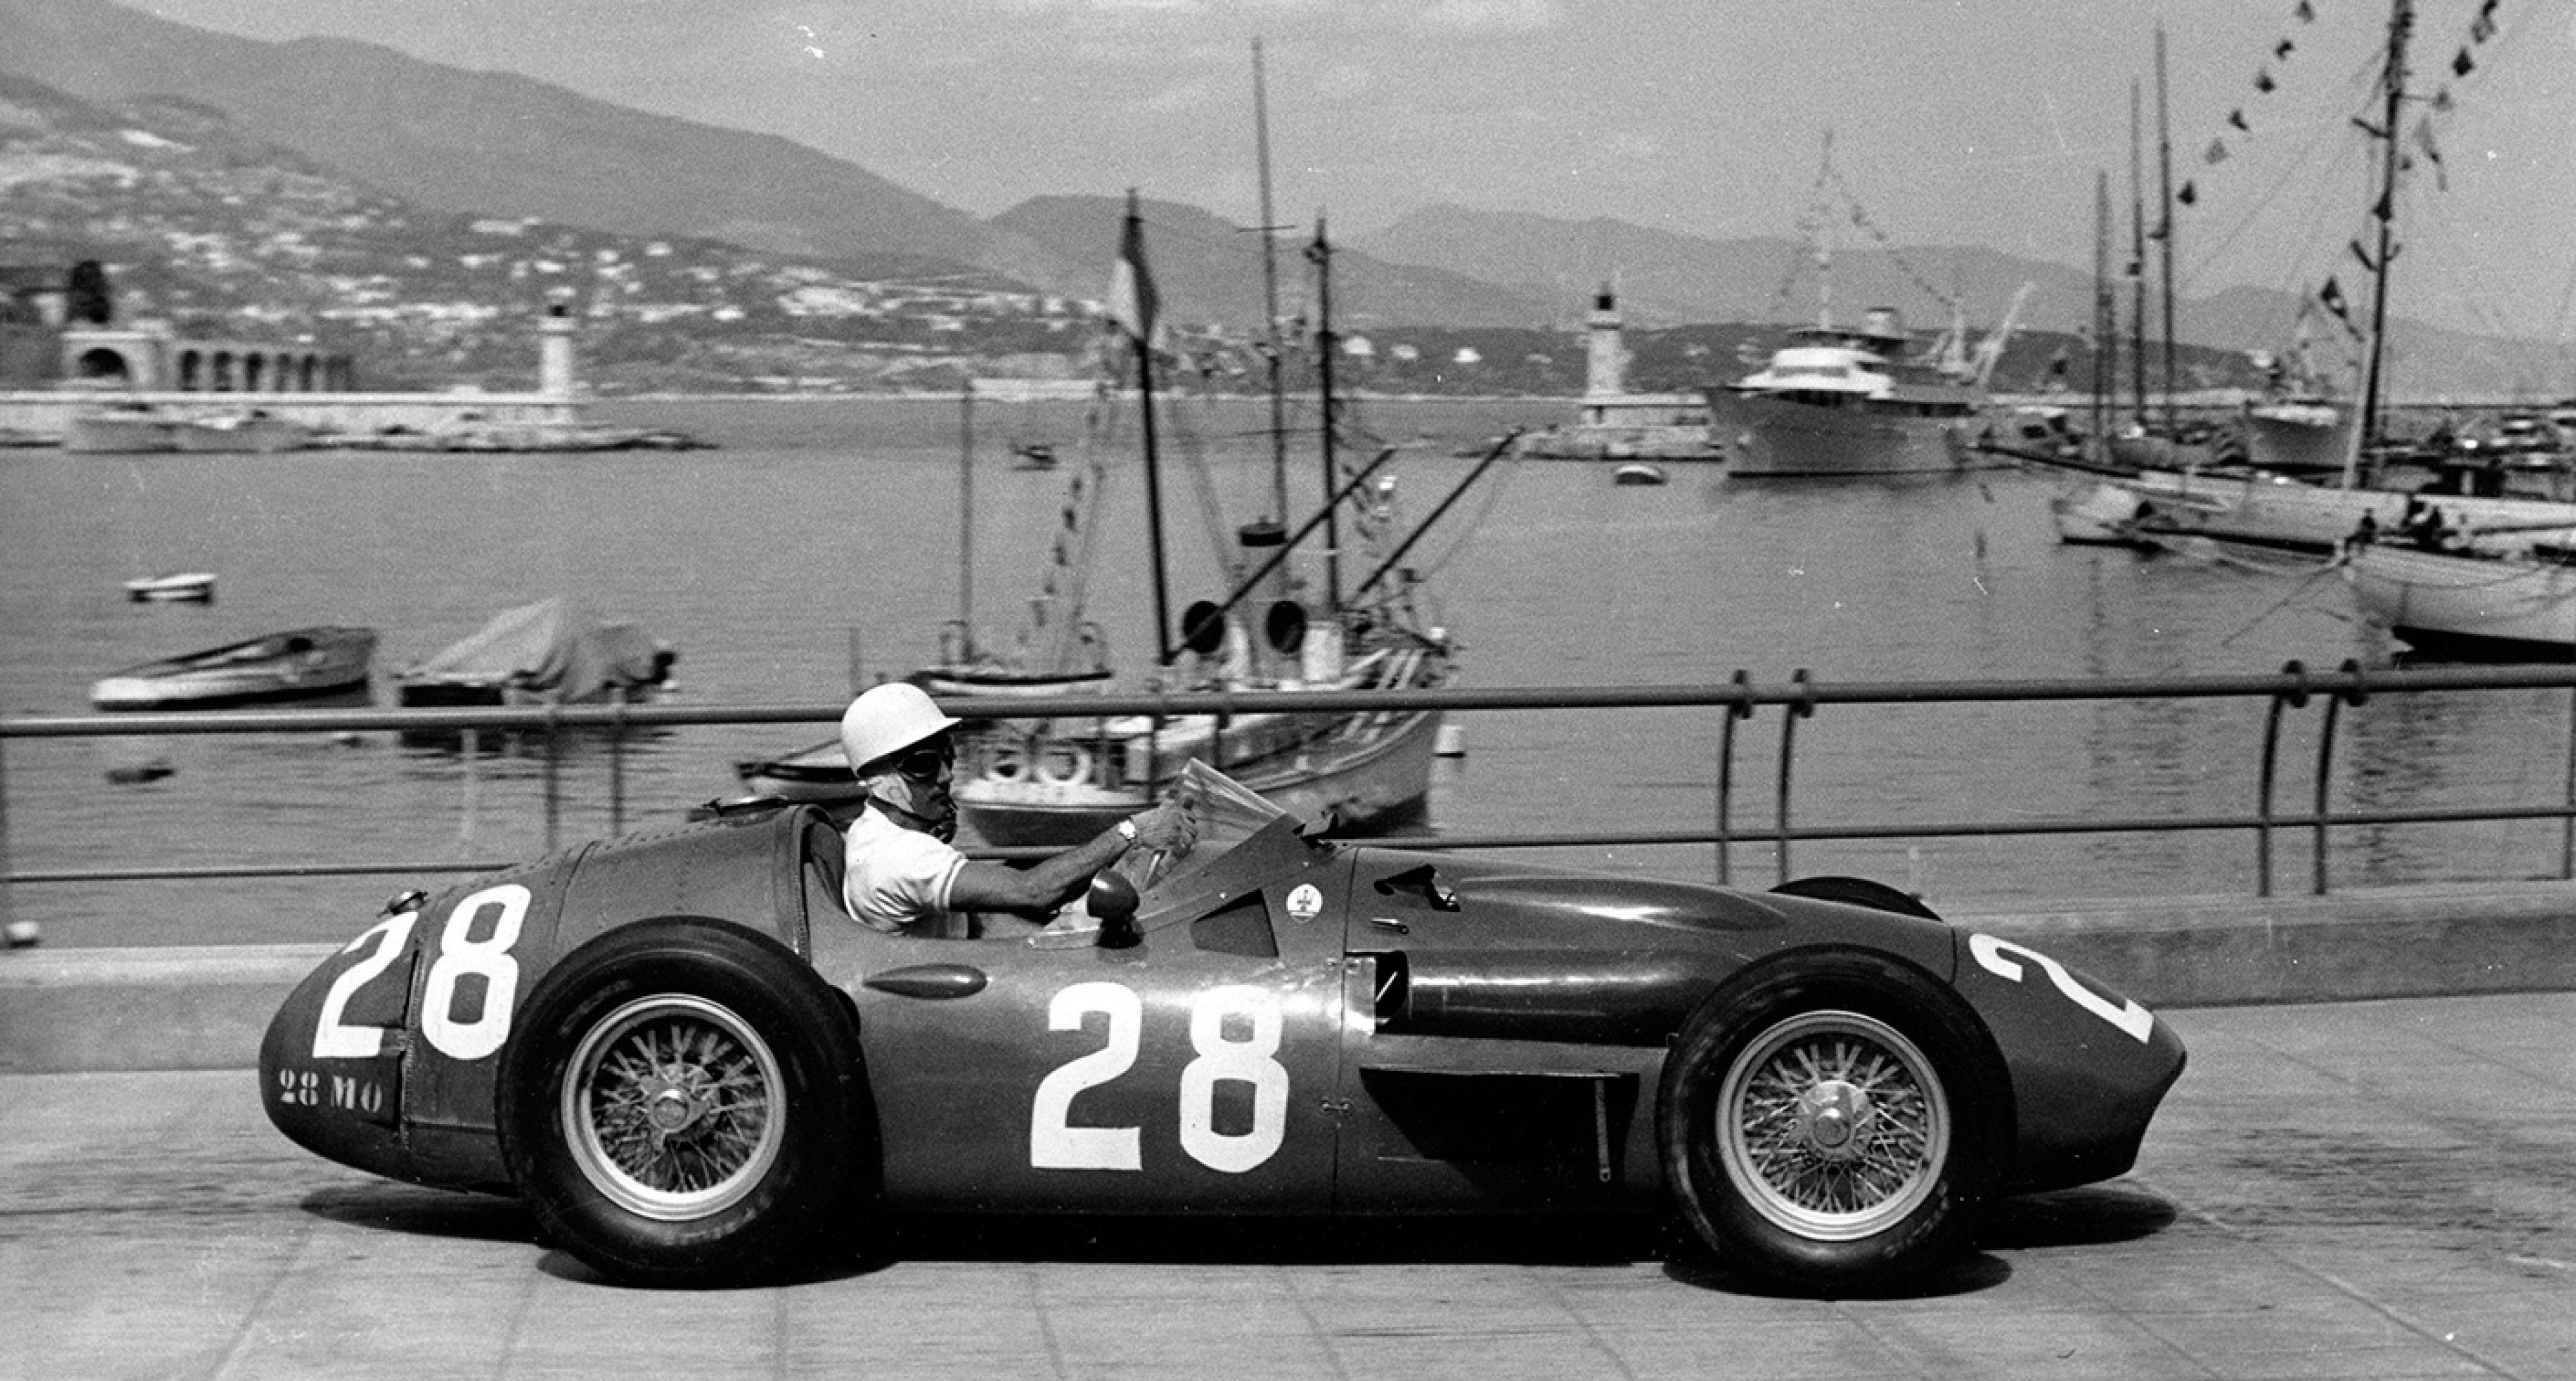 The 250F of Moss at Monaco, 1956